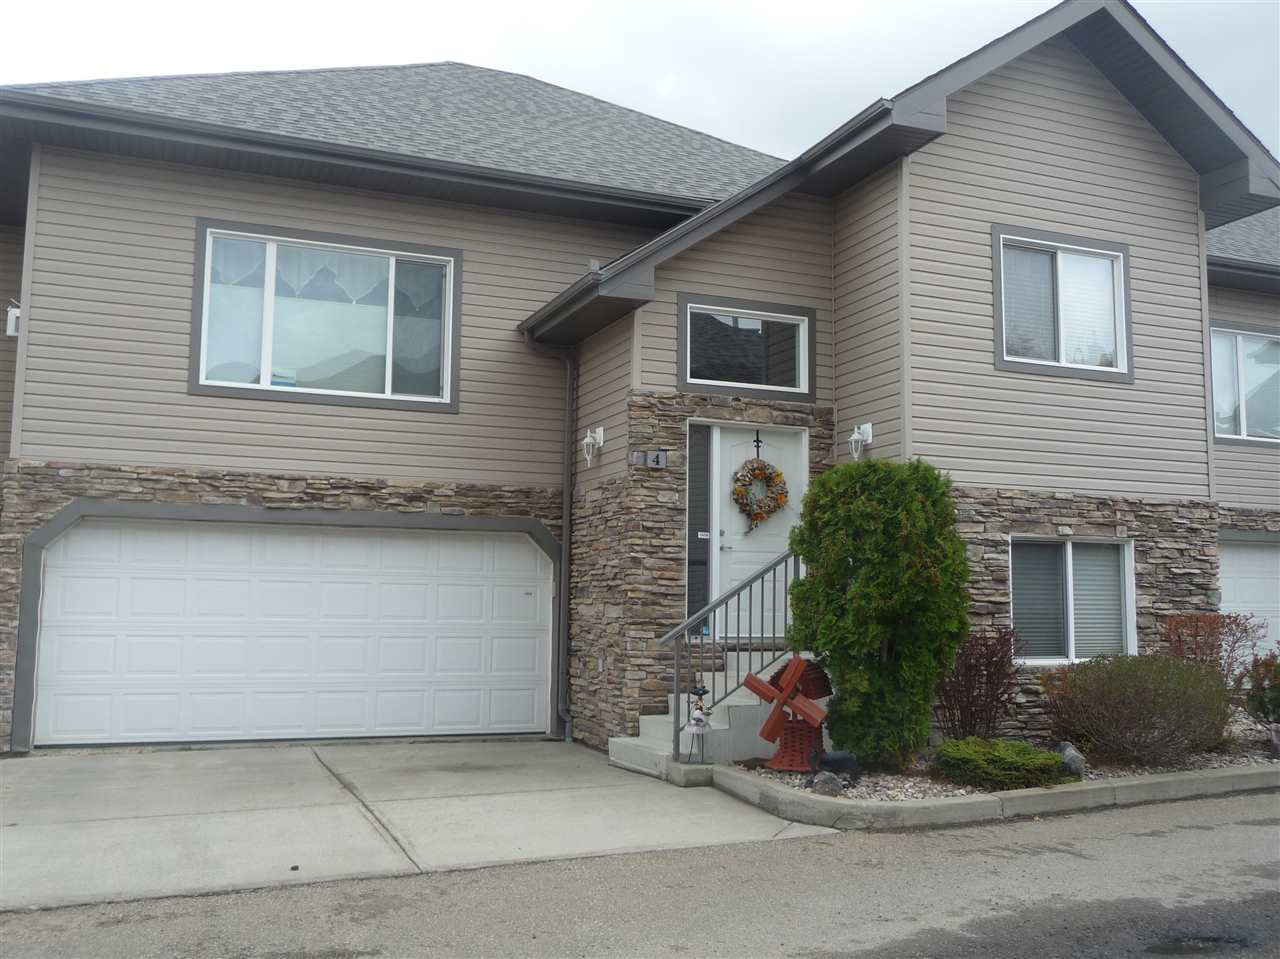 Main Photo: 4 17715 96 Avenue in Edmonton: Zone 20 House Half Duplex for sale : MLS(r) # E4064355